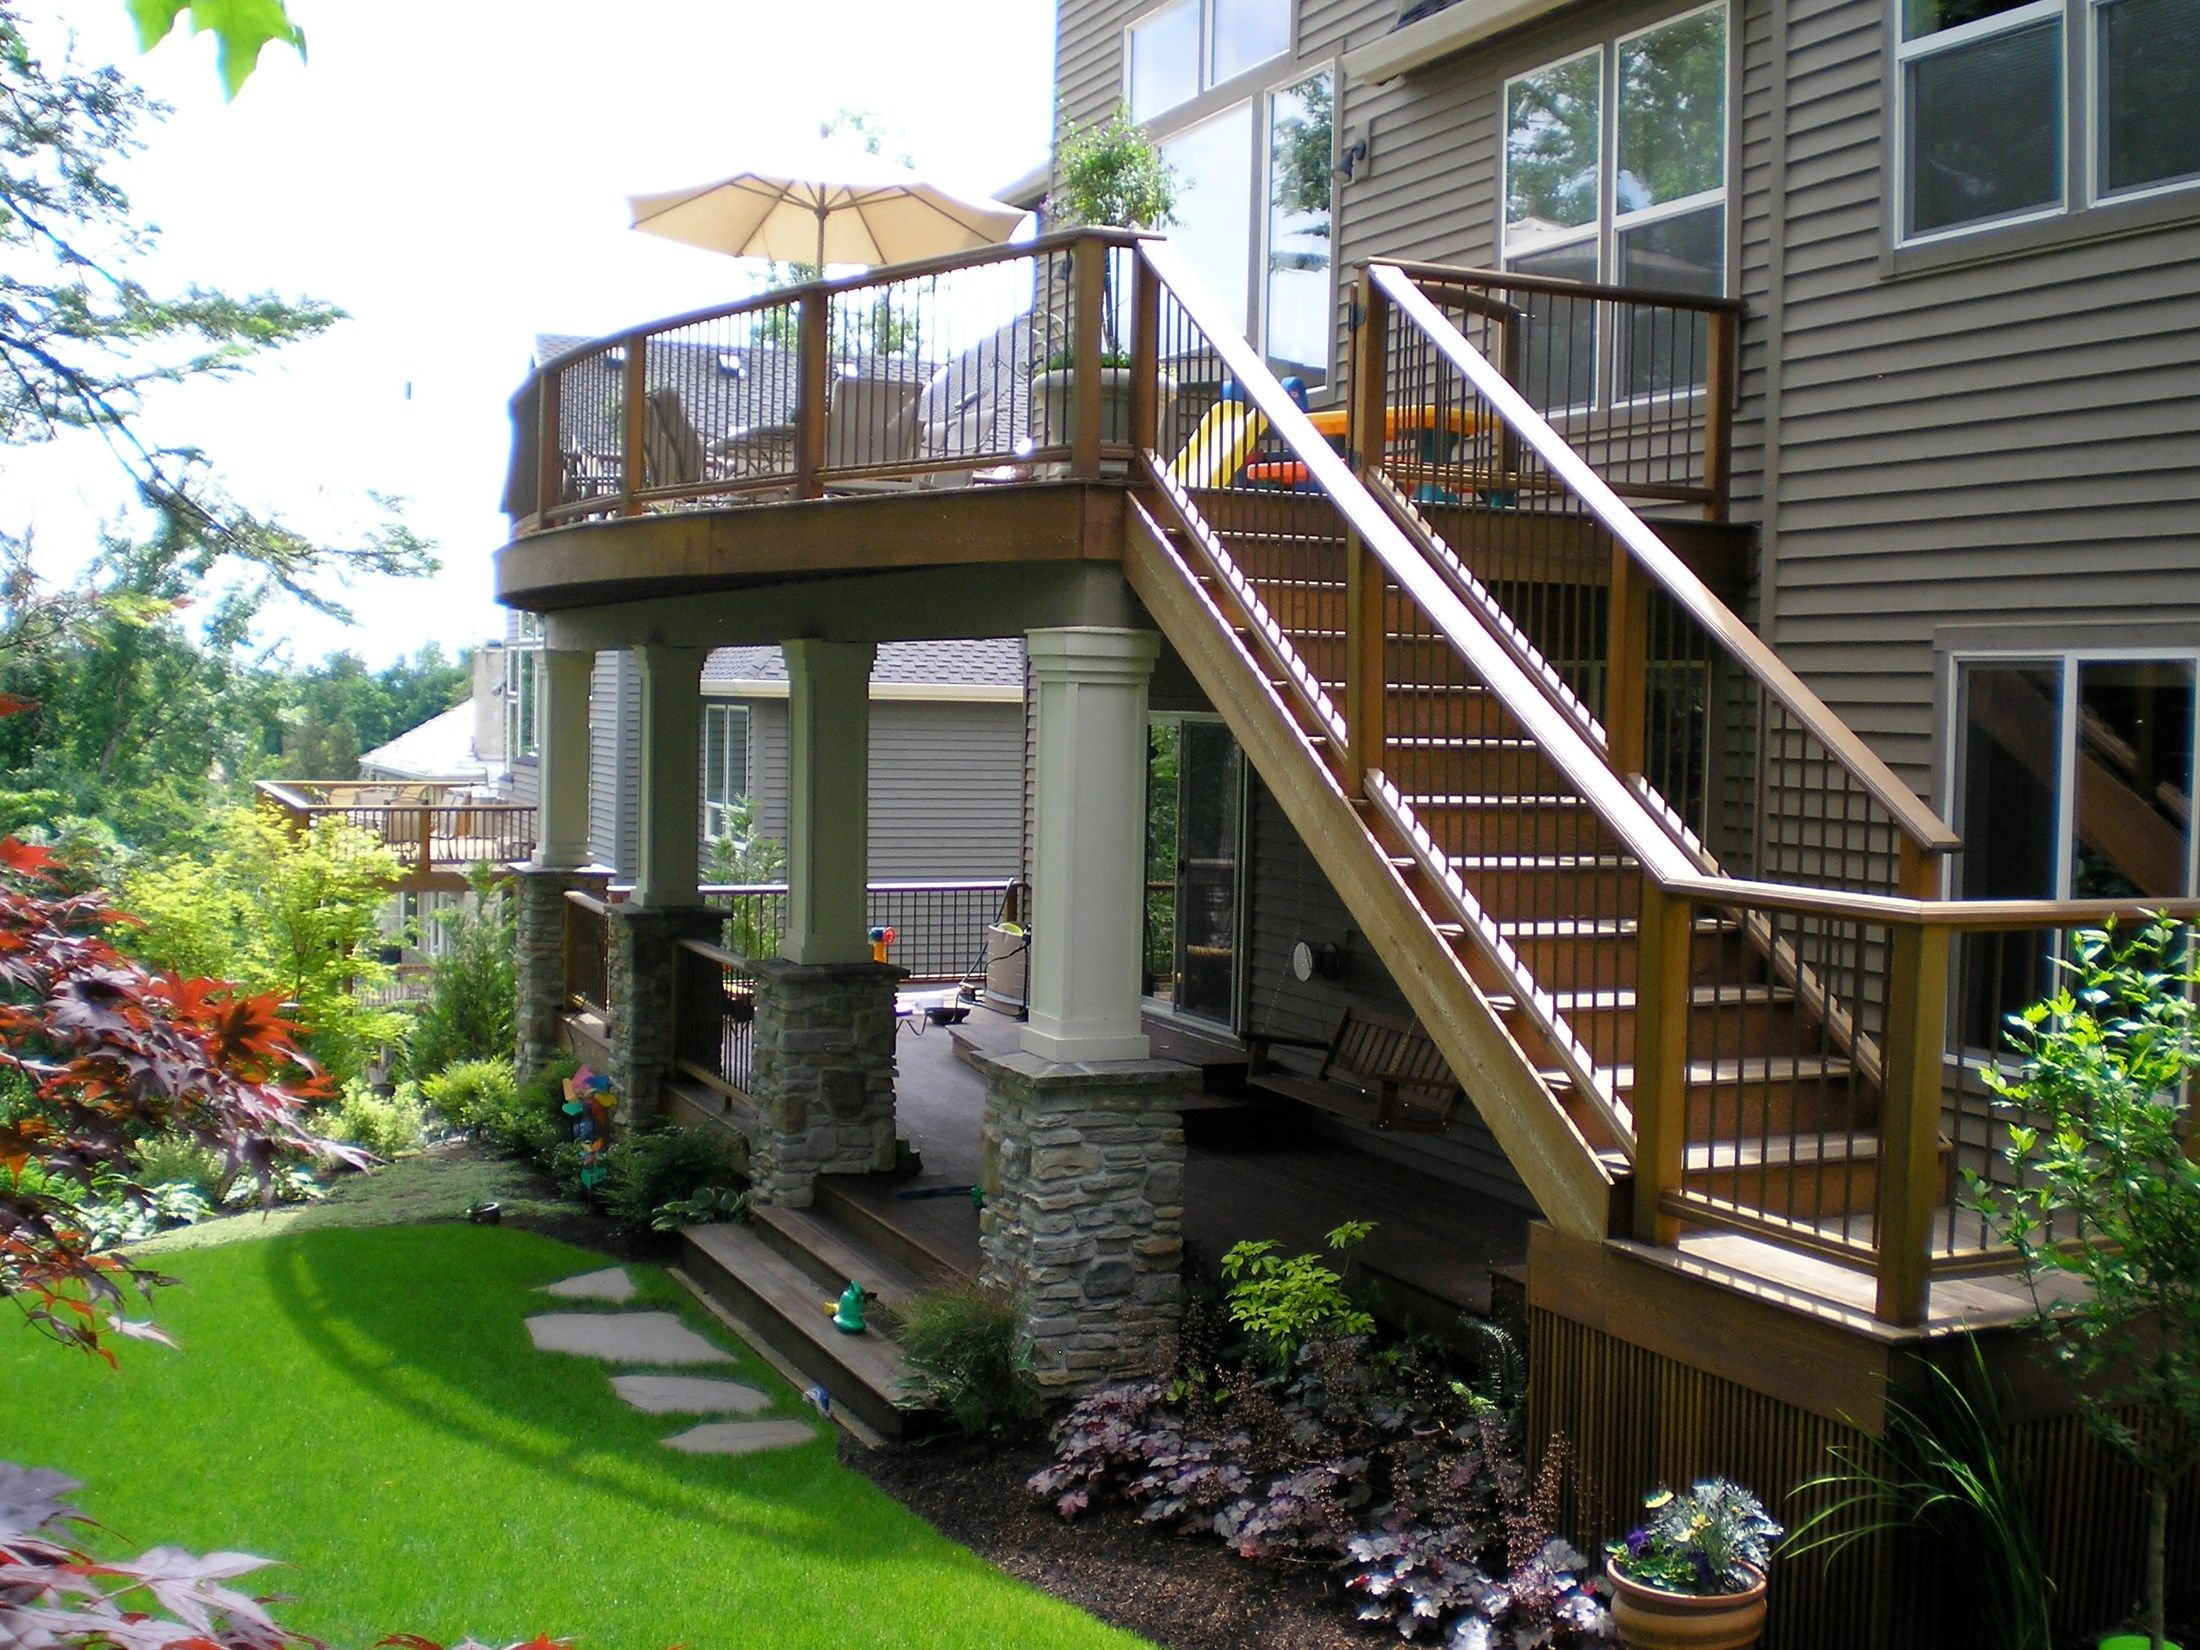 jasper cedar mill - Deck Design Ideas